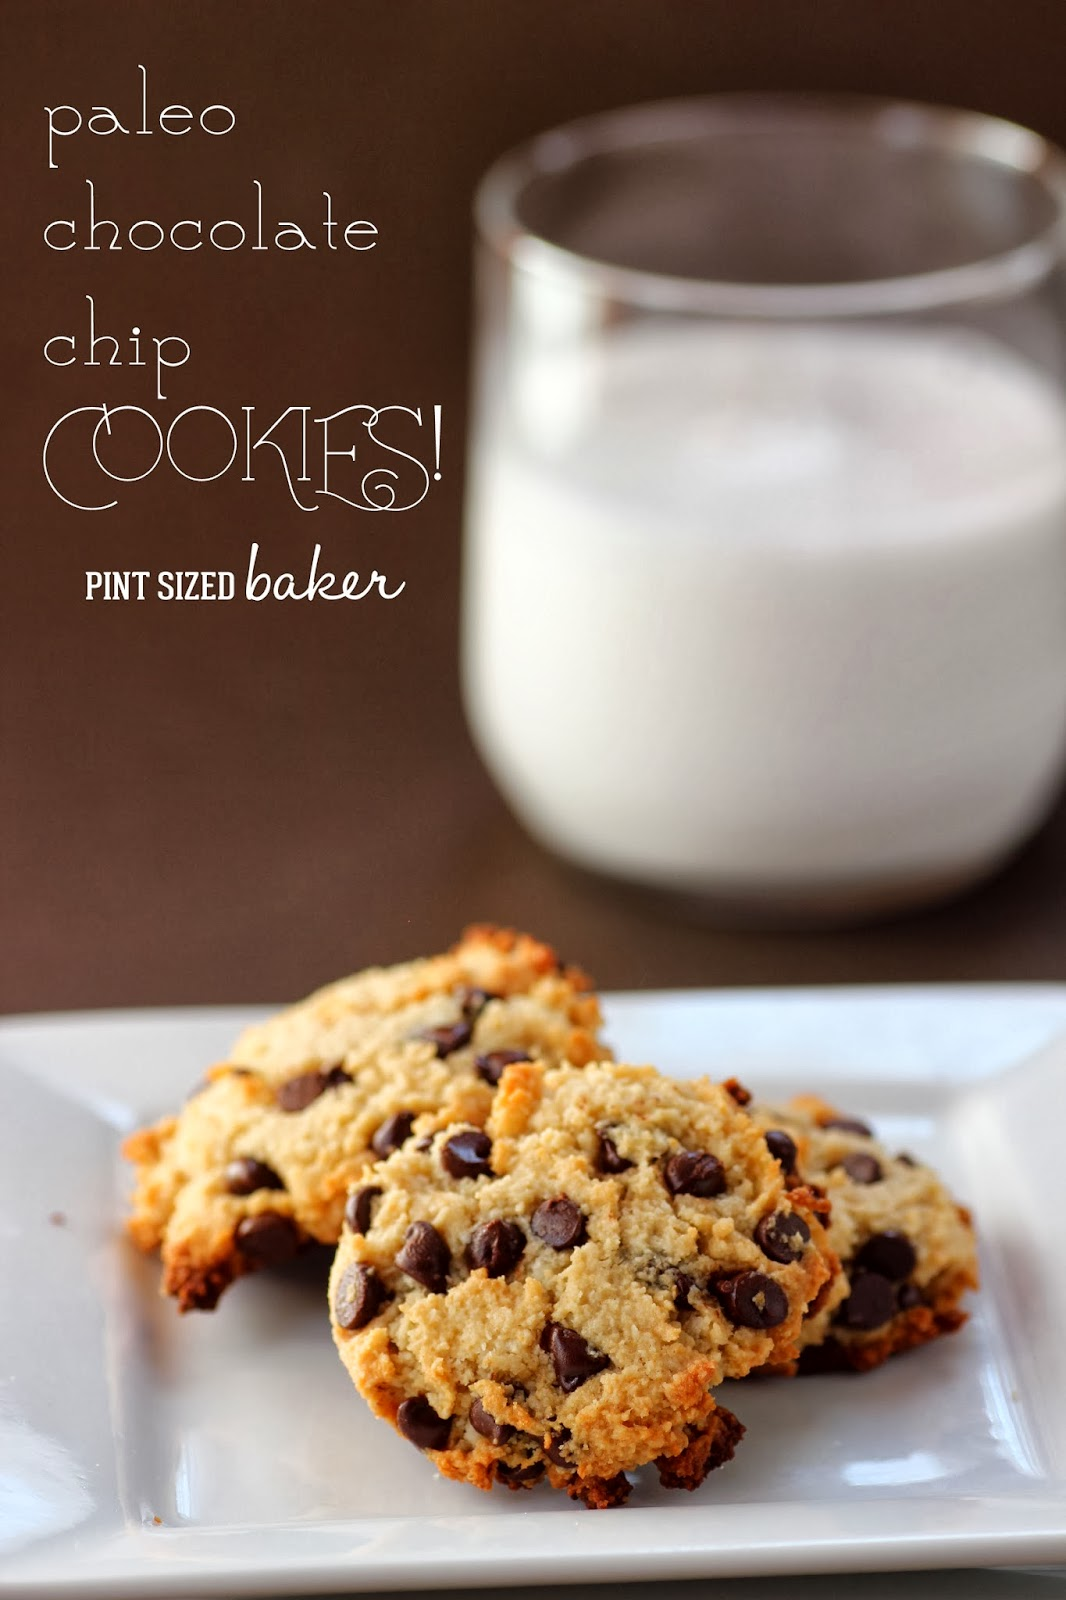 Paleo Chocolate Chip Cookies - Pint Sized Baker